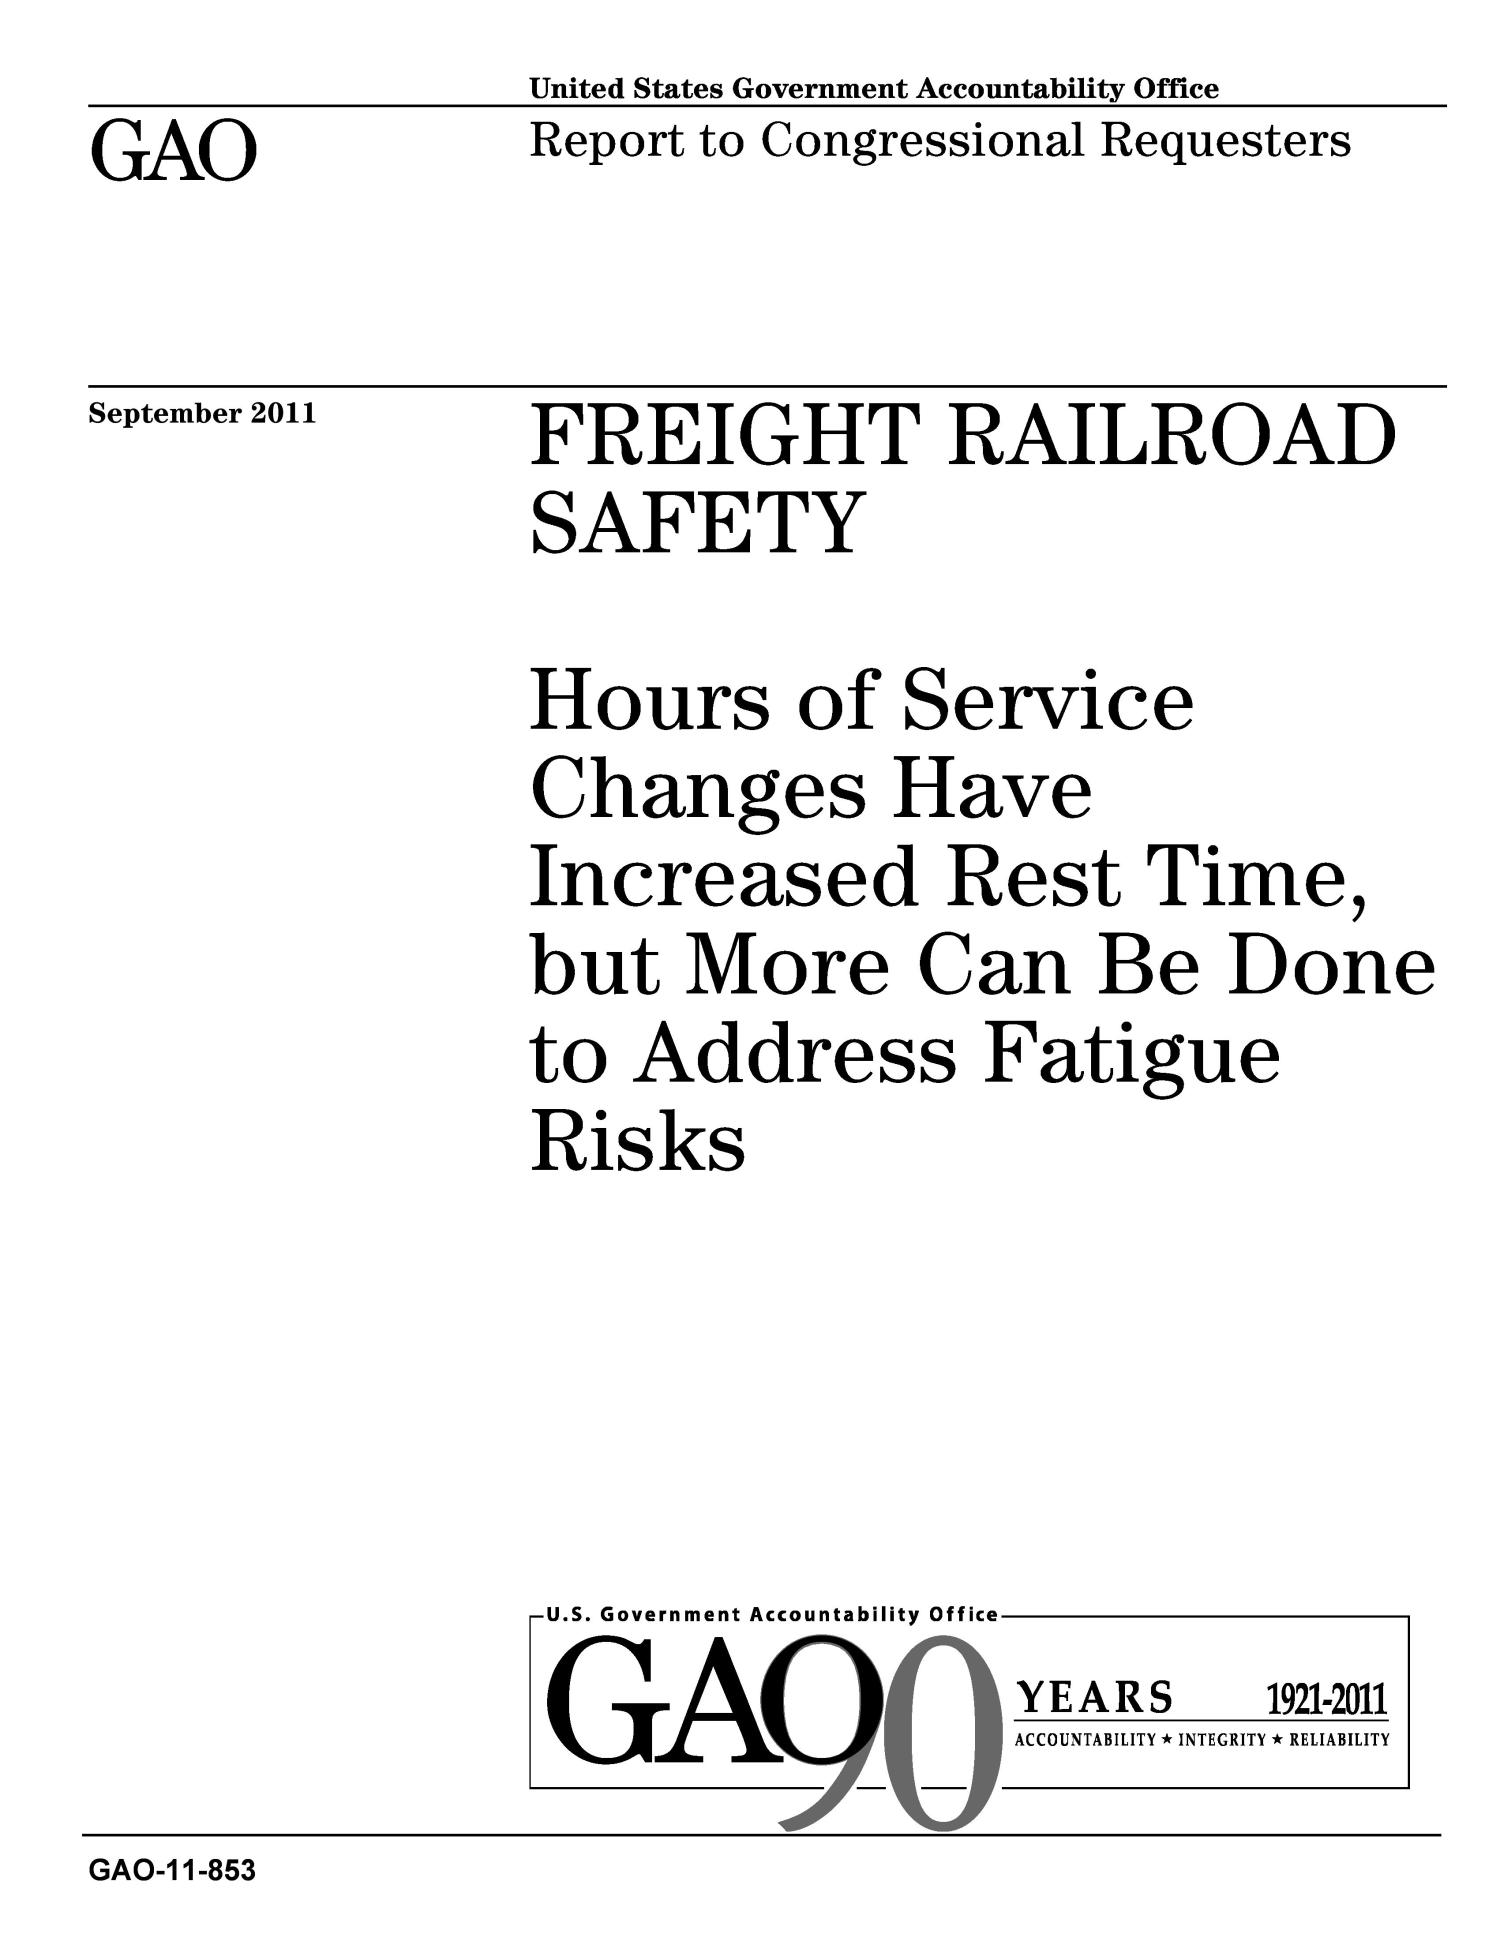 Freight Railroad Safety: Hours of Service Changes Have Increased Rest Time, but More Can Be Done to Address Fatigue Risks                                                                                                      [Sequence #]: 1 of 76